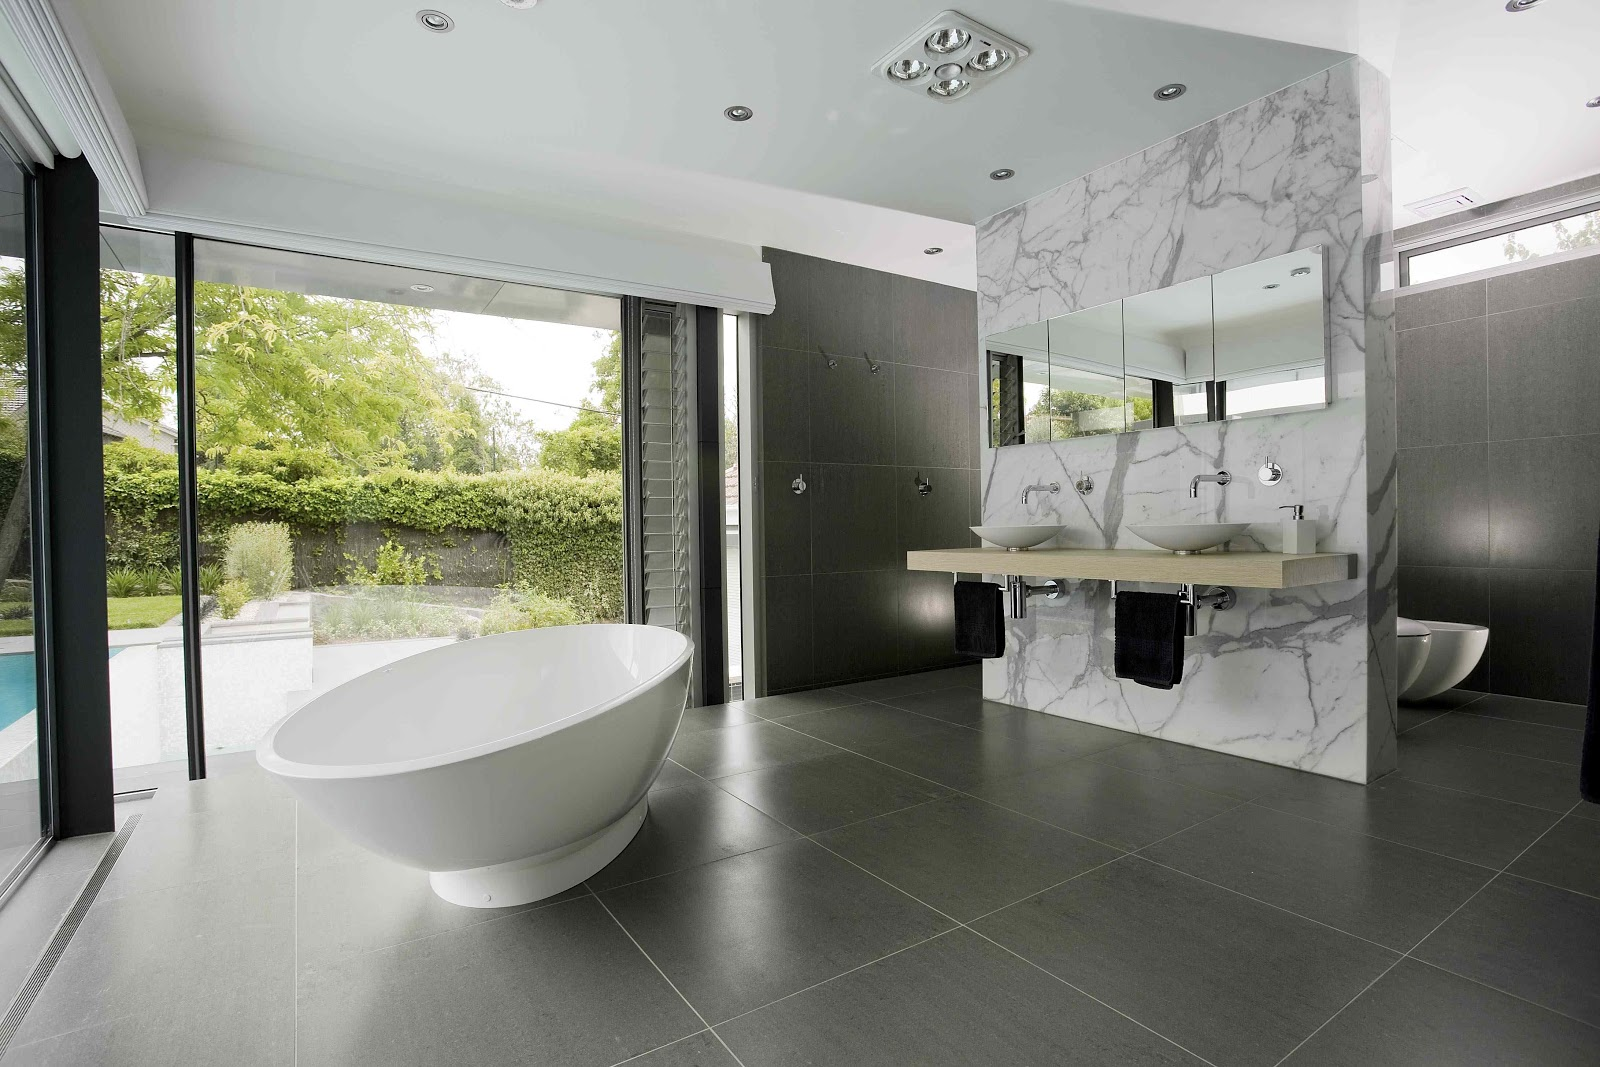 RELAX Does This Image Say Anything Else The Stunning Bath With